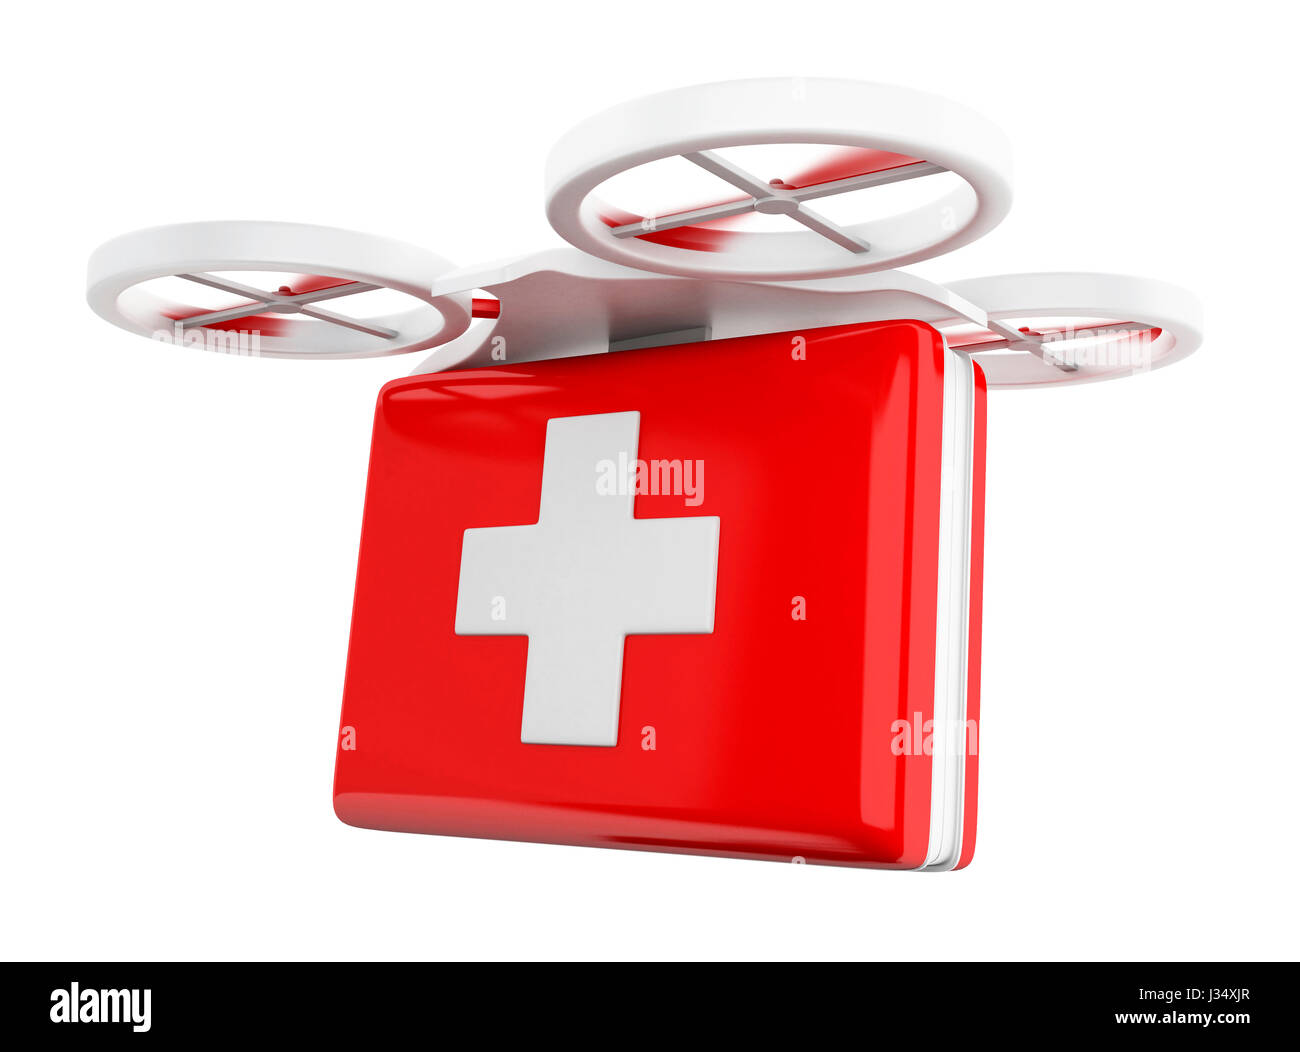 Drone Delivery Medical Stock Photos & Drone Delivery Medical Stock